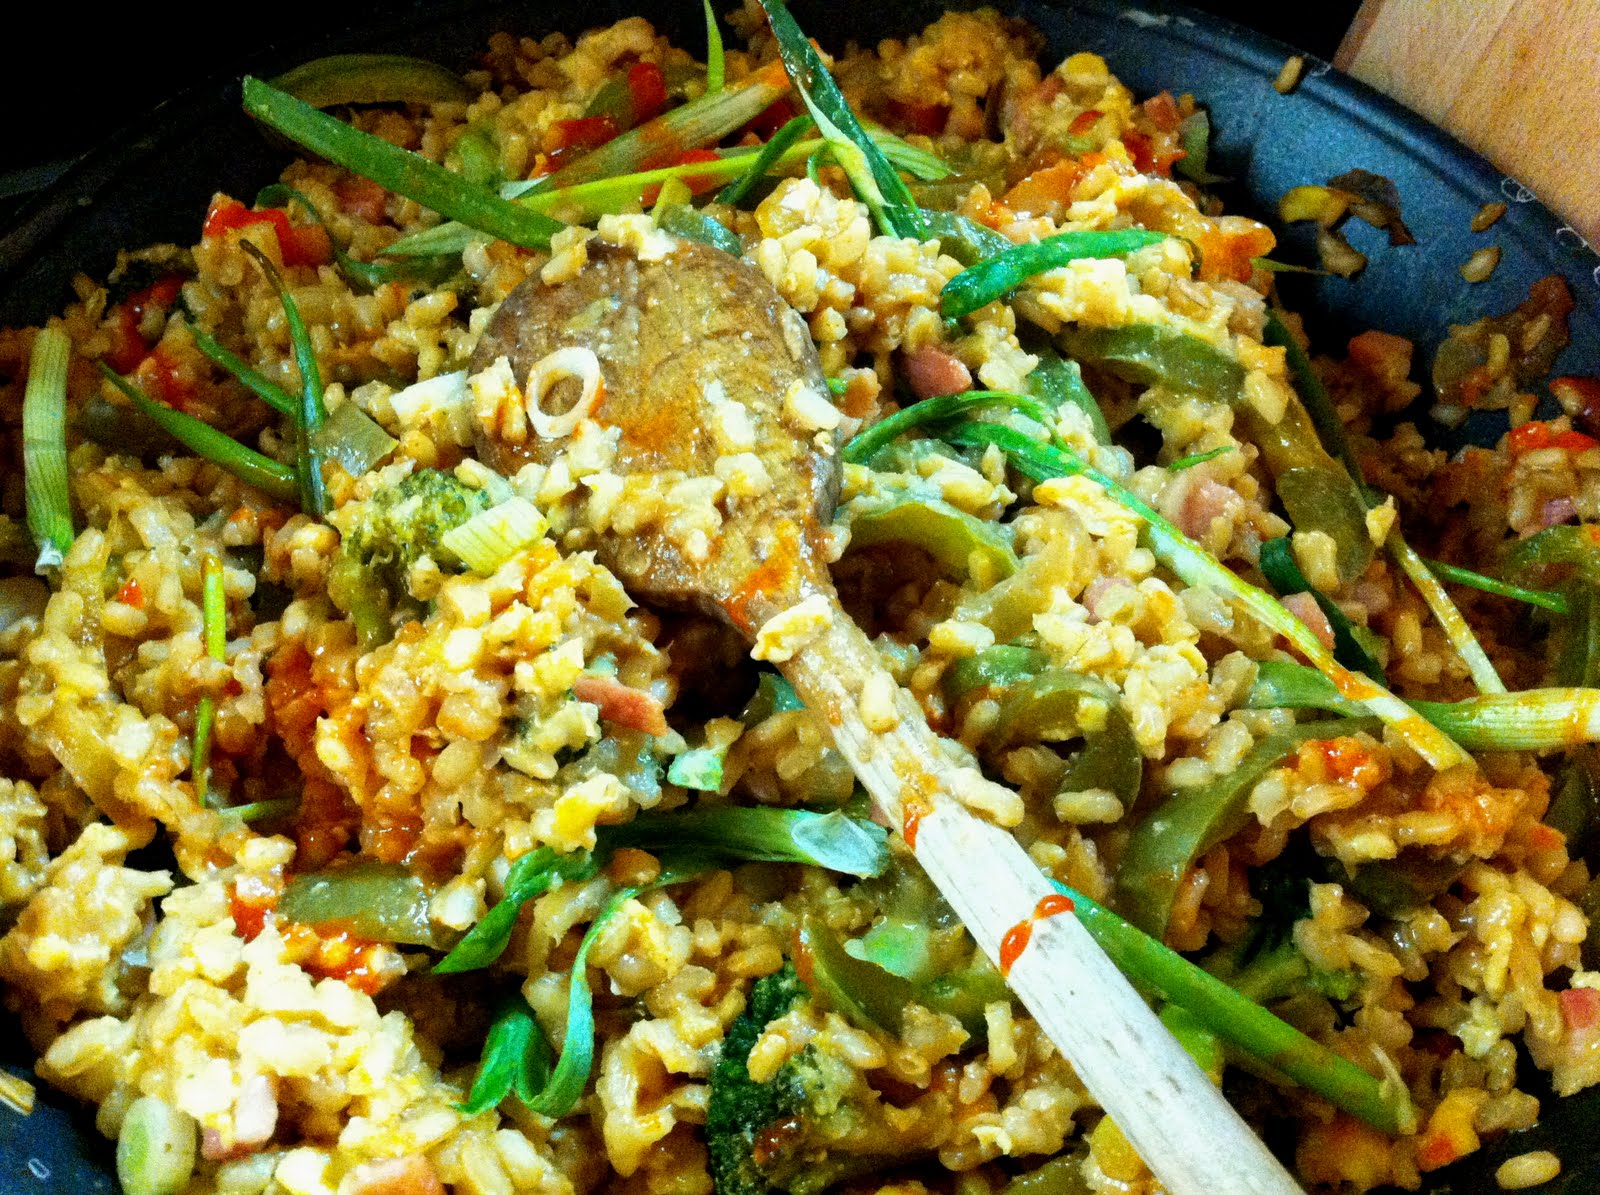 The Wandering Cook: Thai style fried rice